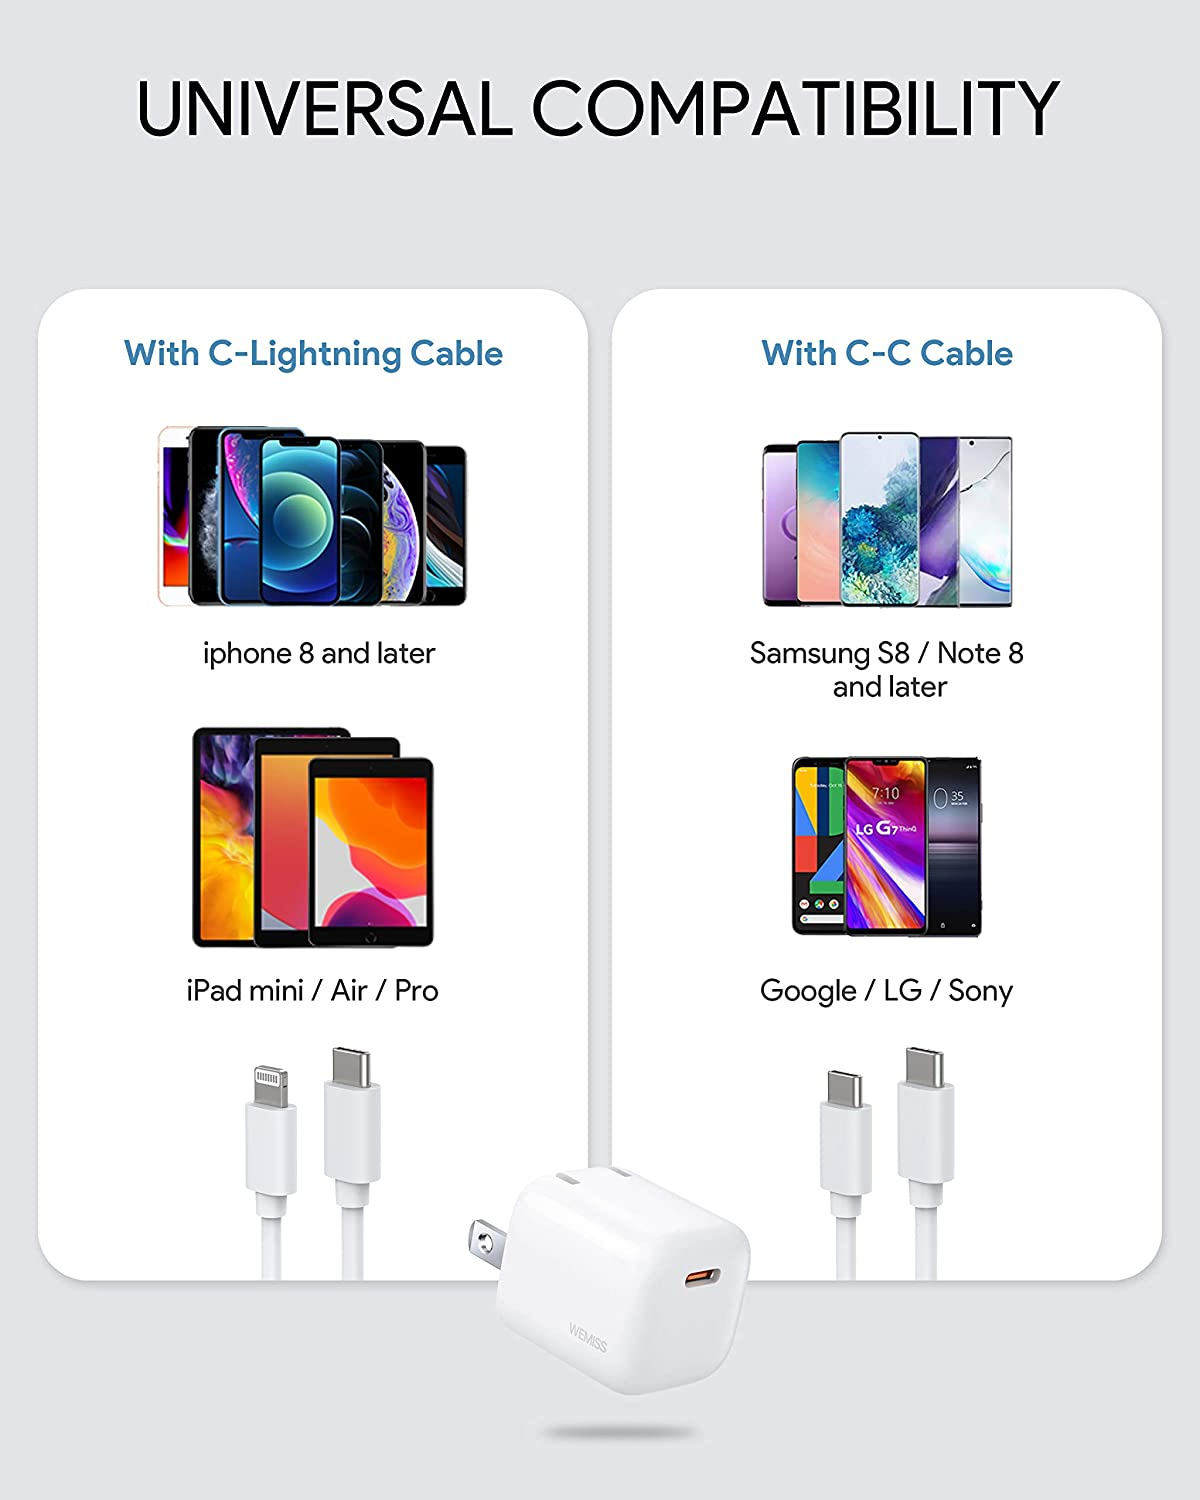 USB C Charger, WEMISS 20W Mini iPhone Fast Charger with Foldable Plugs, Compatible with iPhone 12/12 Mini / 12 Pro / 12 Pro Max/Series 8-11, iPad MagSafe AirPods, Galaxy Pixel and More